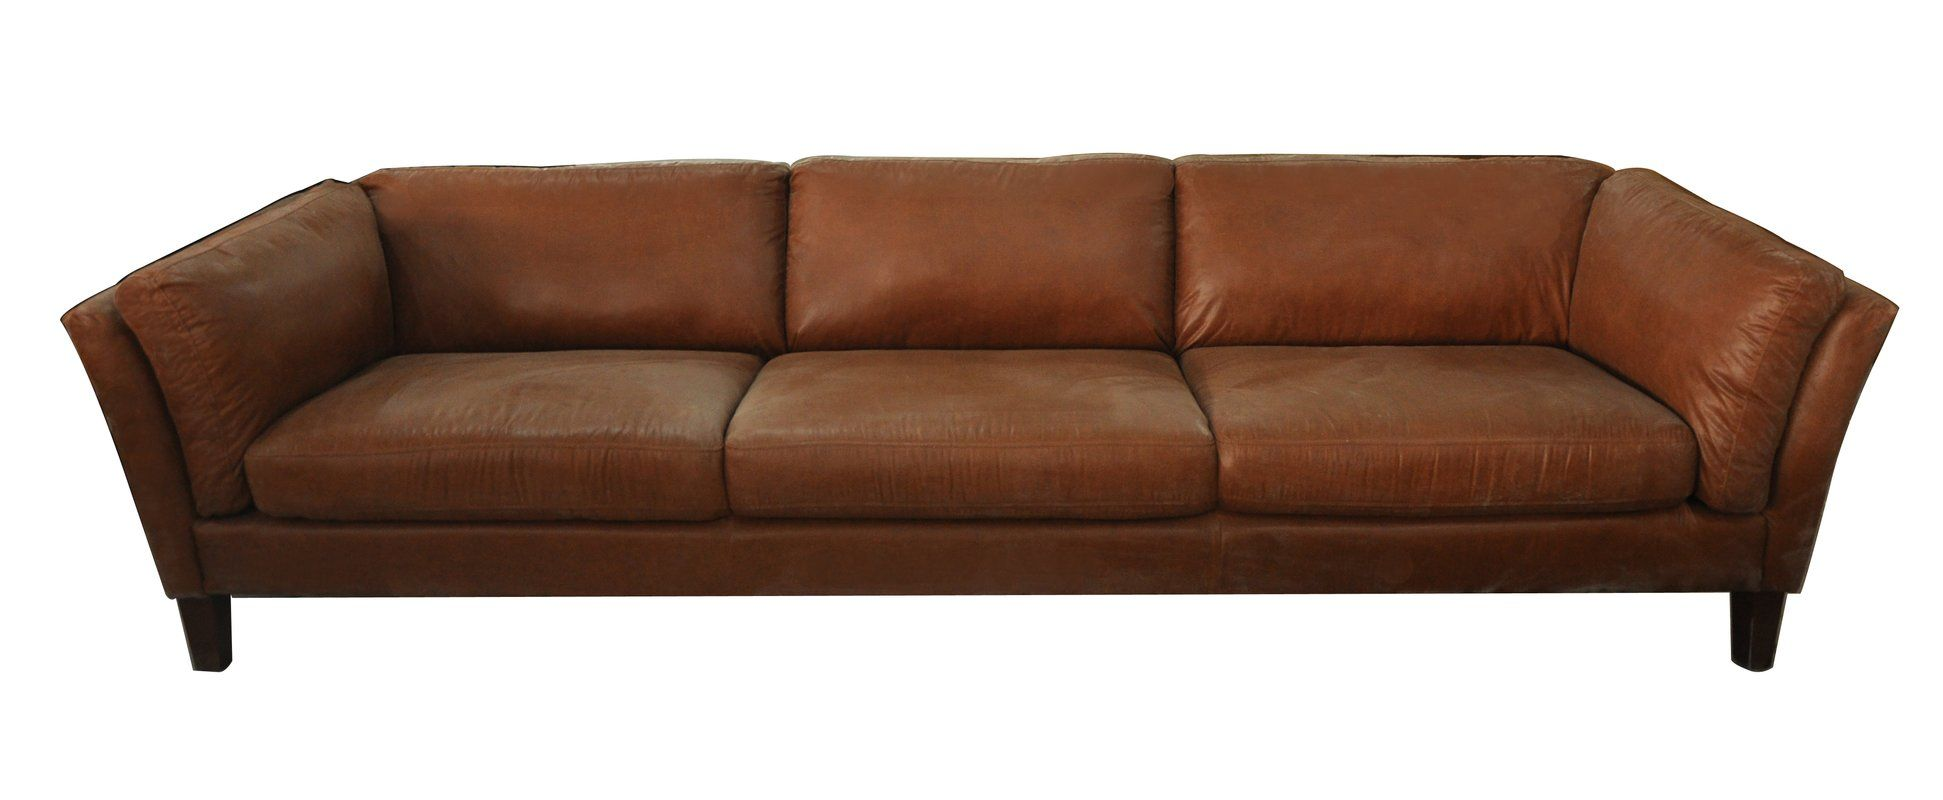 Condron 3 Seater Leather Sofa in 2019 | House | 3 seater ...